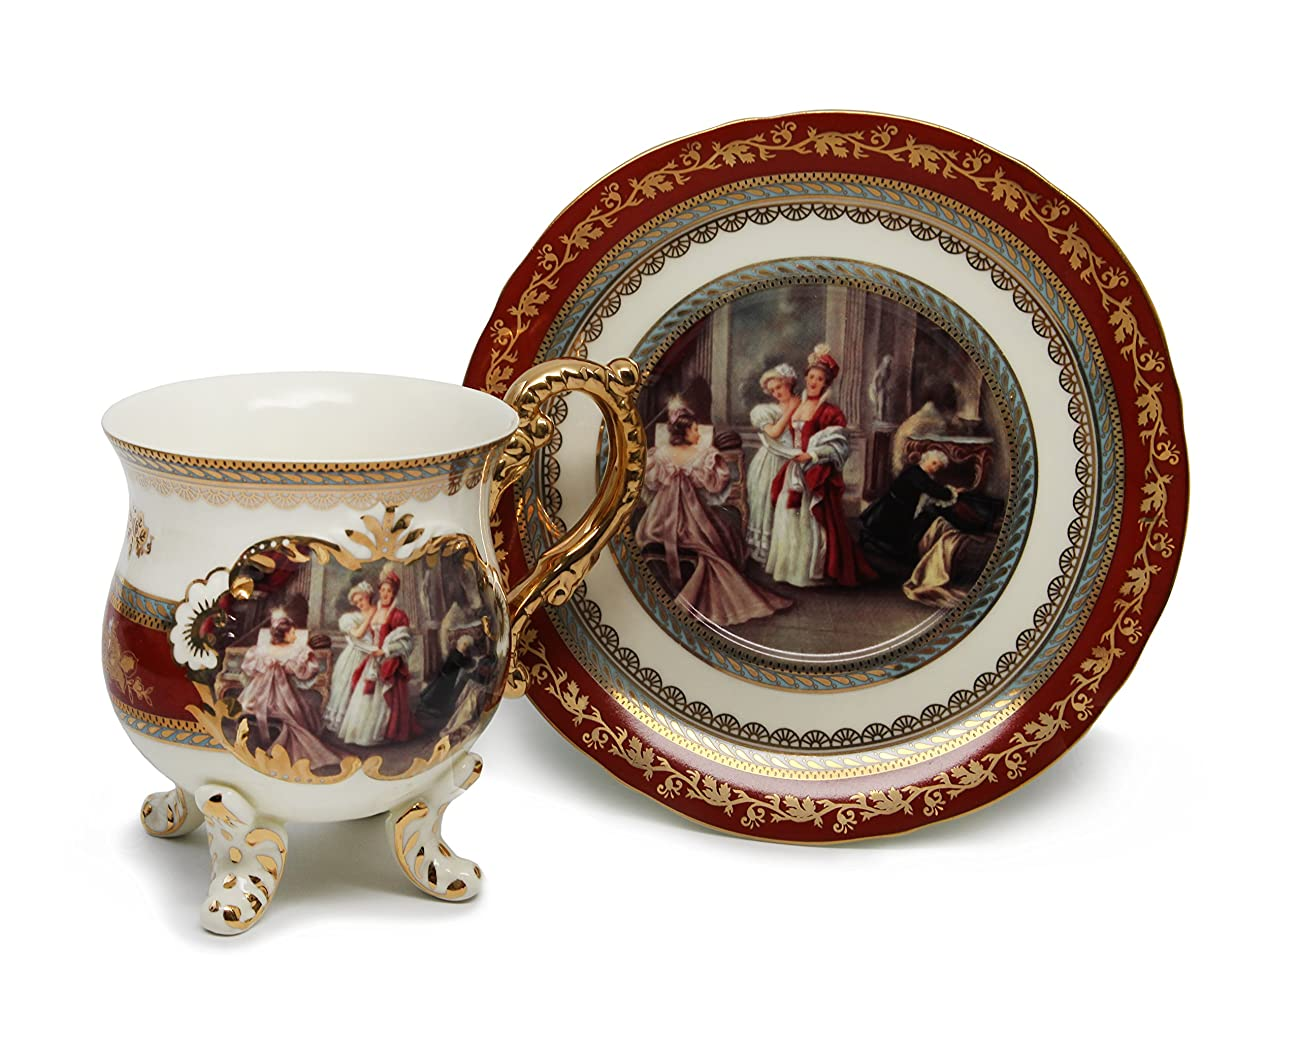 Royal Porcelain 15-Piece Antique RED Vintage Dining Tea Cup Set, Service for 6, Handmade & Hand-Painted, 24K Gold Bone China Tableware 3